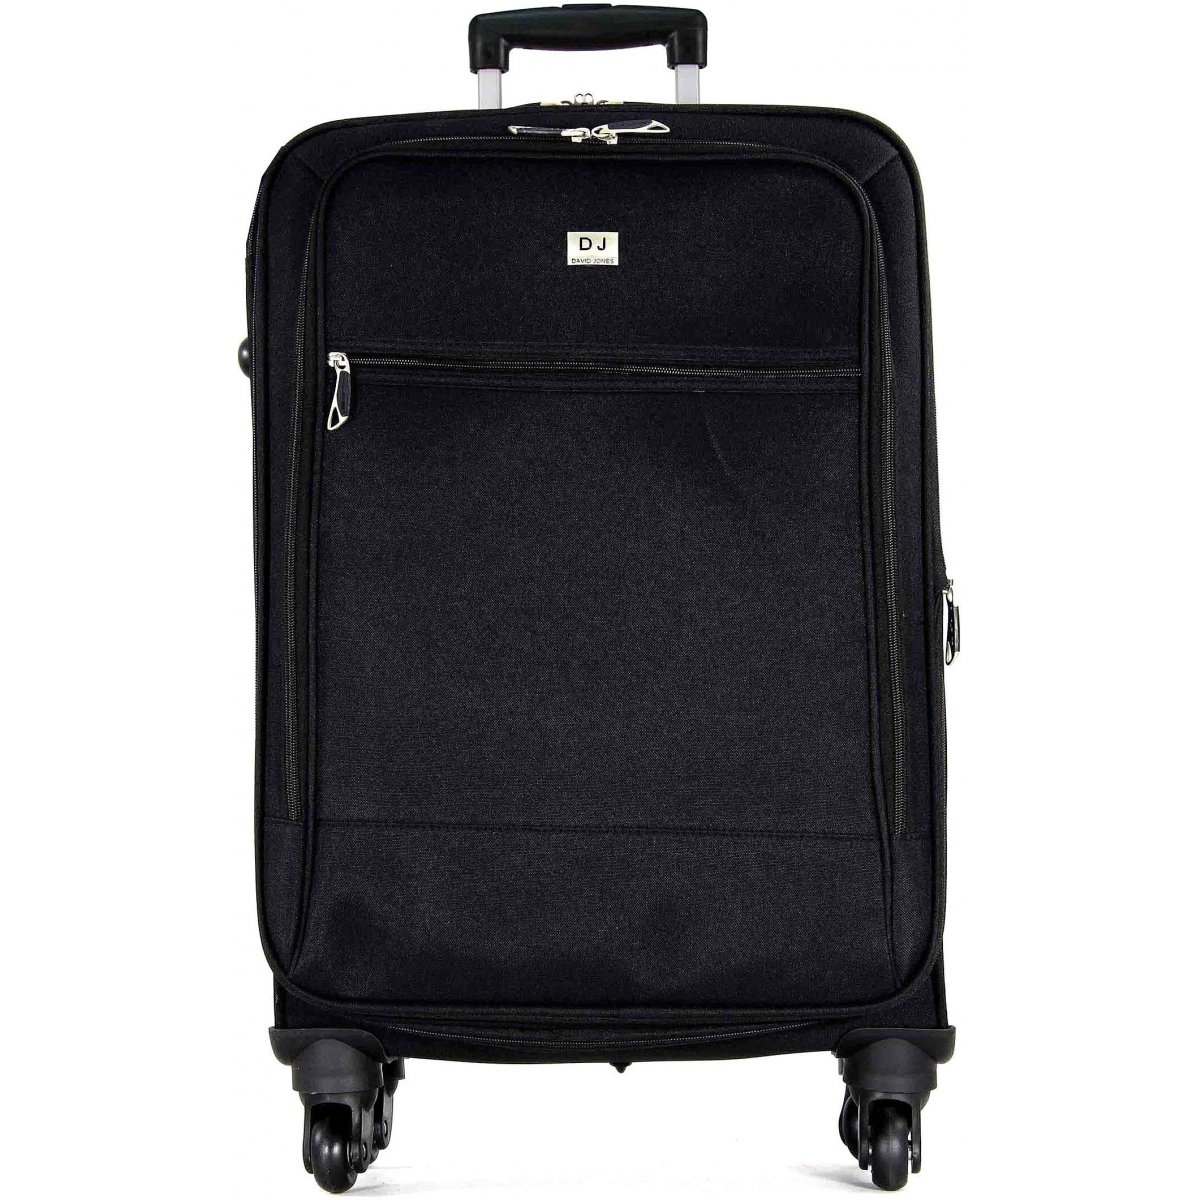 valise souple david jones taille m 66cm r20031m. Black Bedroom Furniture Sets. Home Design Ideas